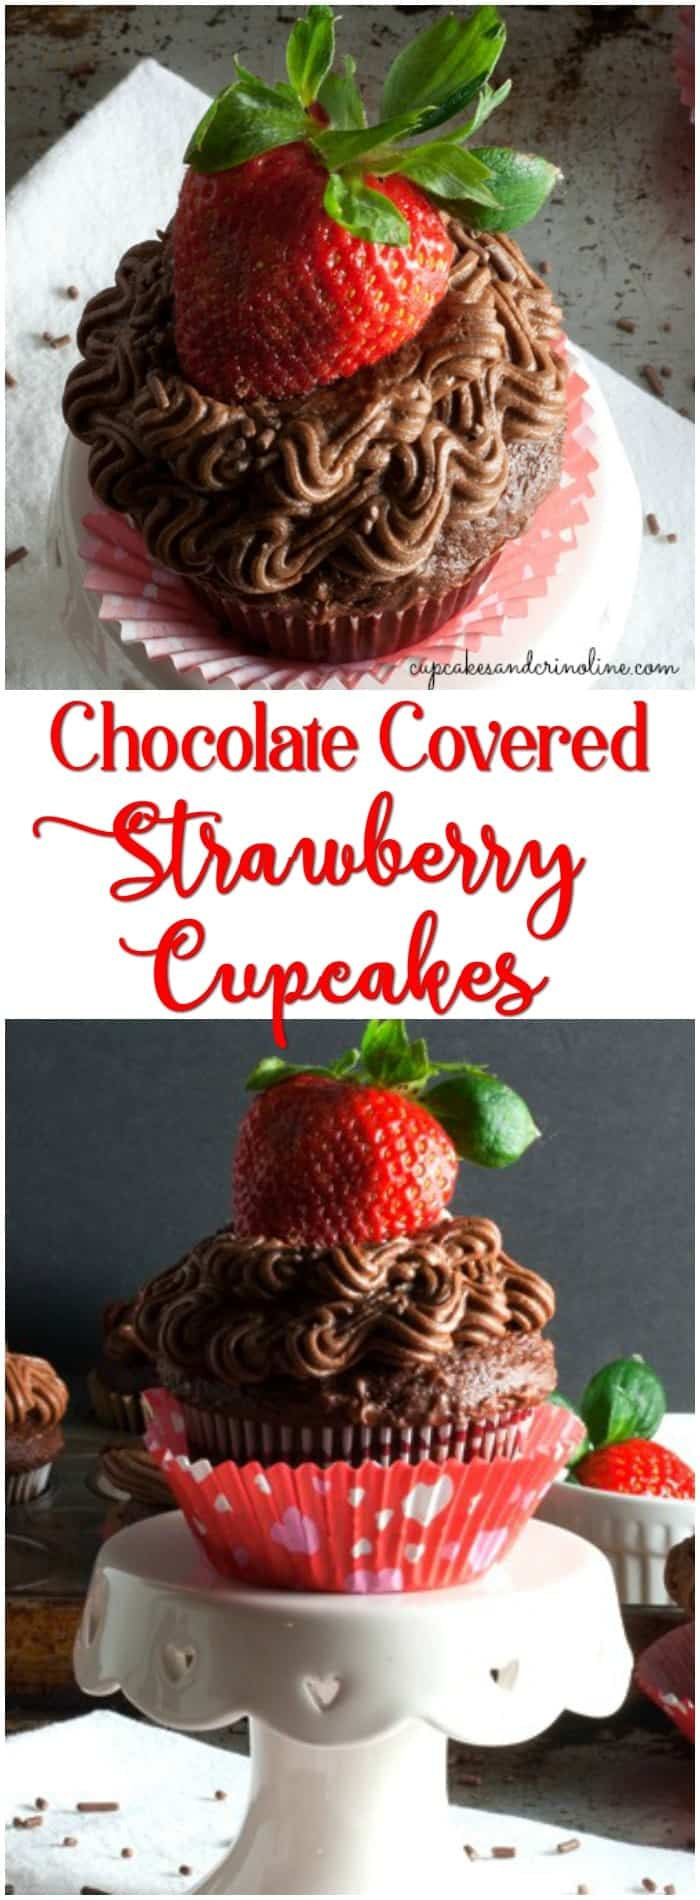 Chocolate Covered Strawberry Cupcakes with Buttercream Frosting from cupcakes and crinoline